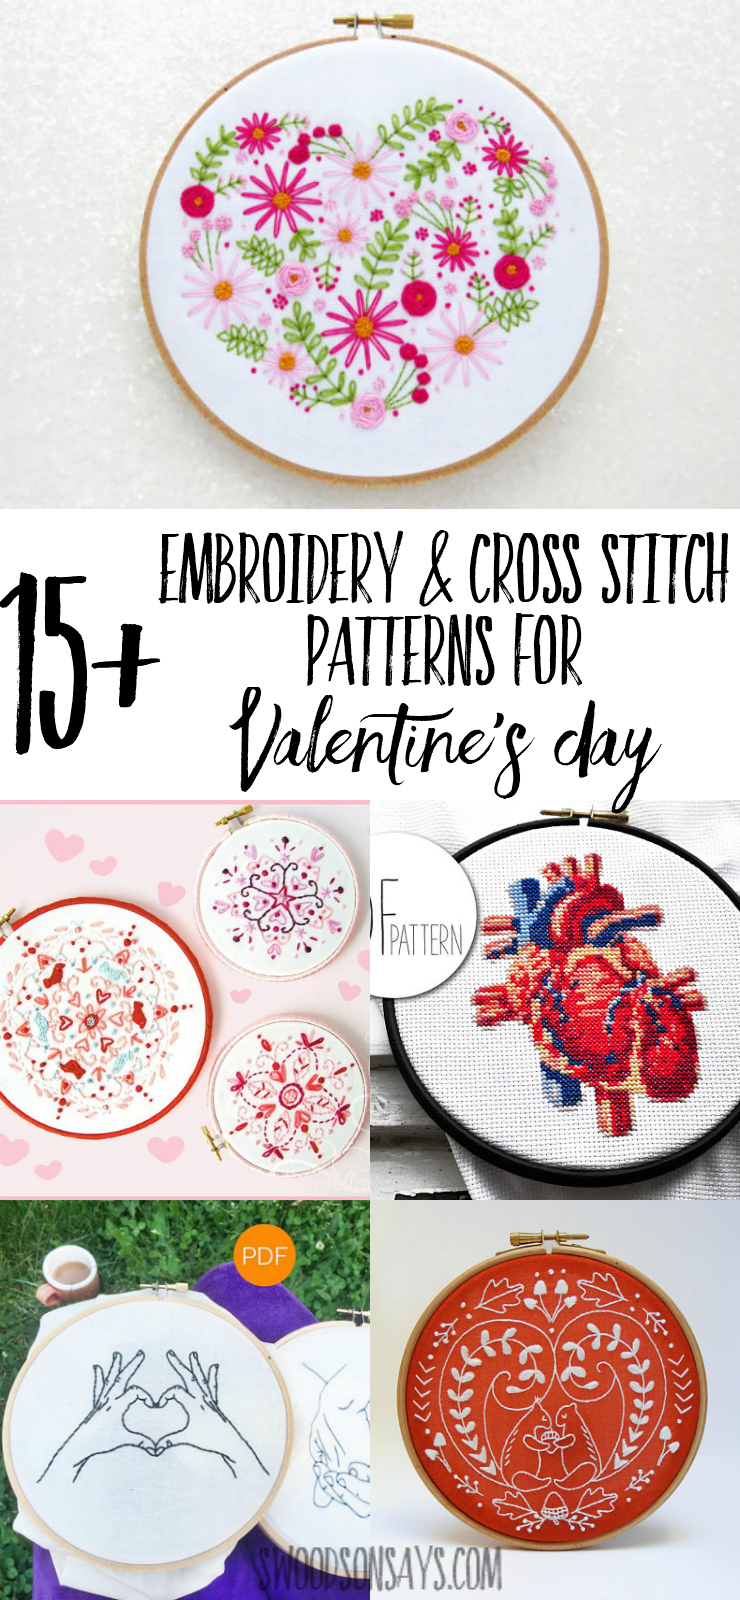 Looking for something to stitch this Valentine's Day? I have a great list of over 15 Valentine's Day embroidery designs and Valentine's Day cross stitch patterns. Perfect for stitching on hoop art, hankerchiefs,blankets, or pillows, make a handmade gift for Valentine's Day! #embroidery #valentine #valentinesday #crossstitch